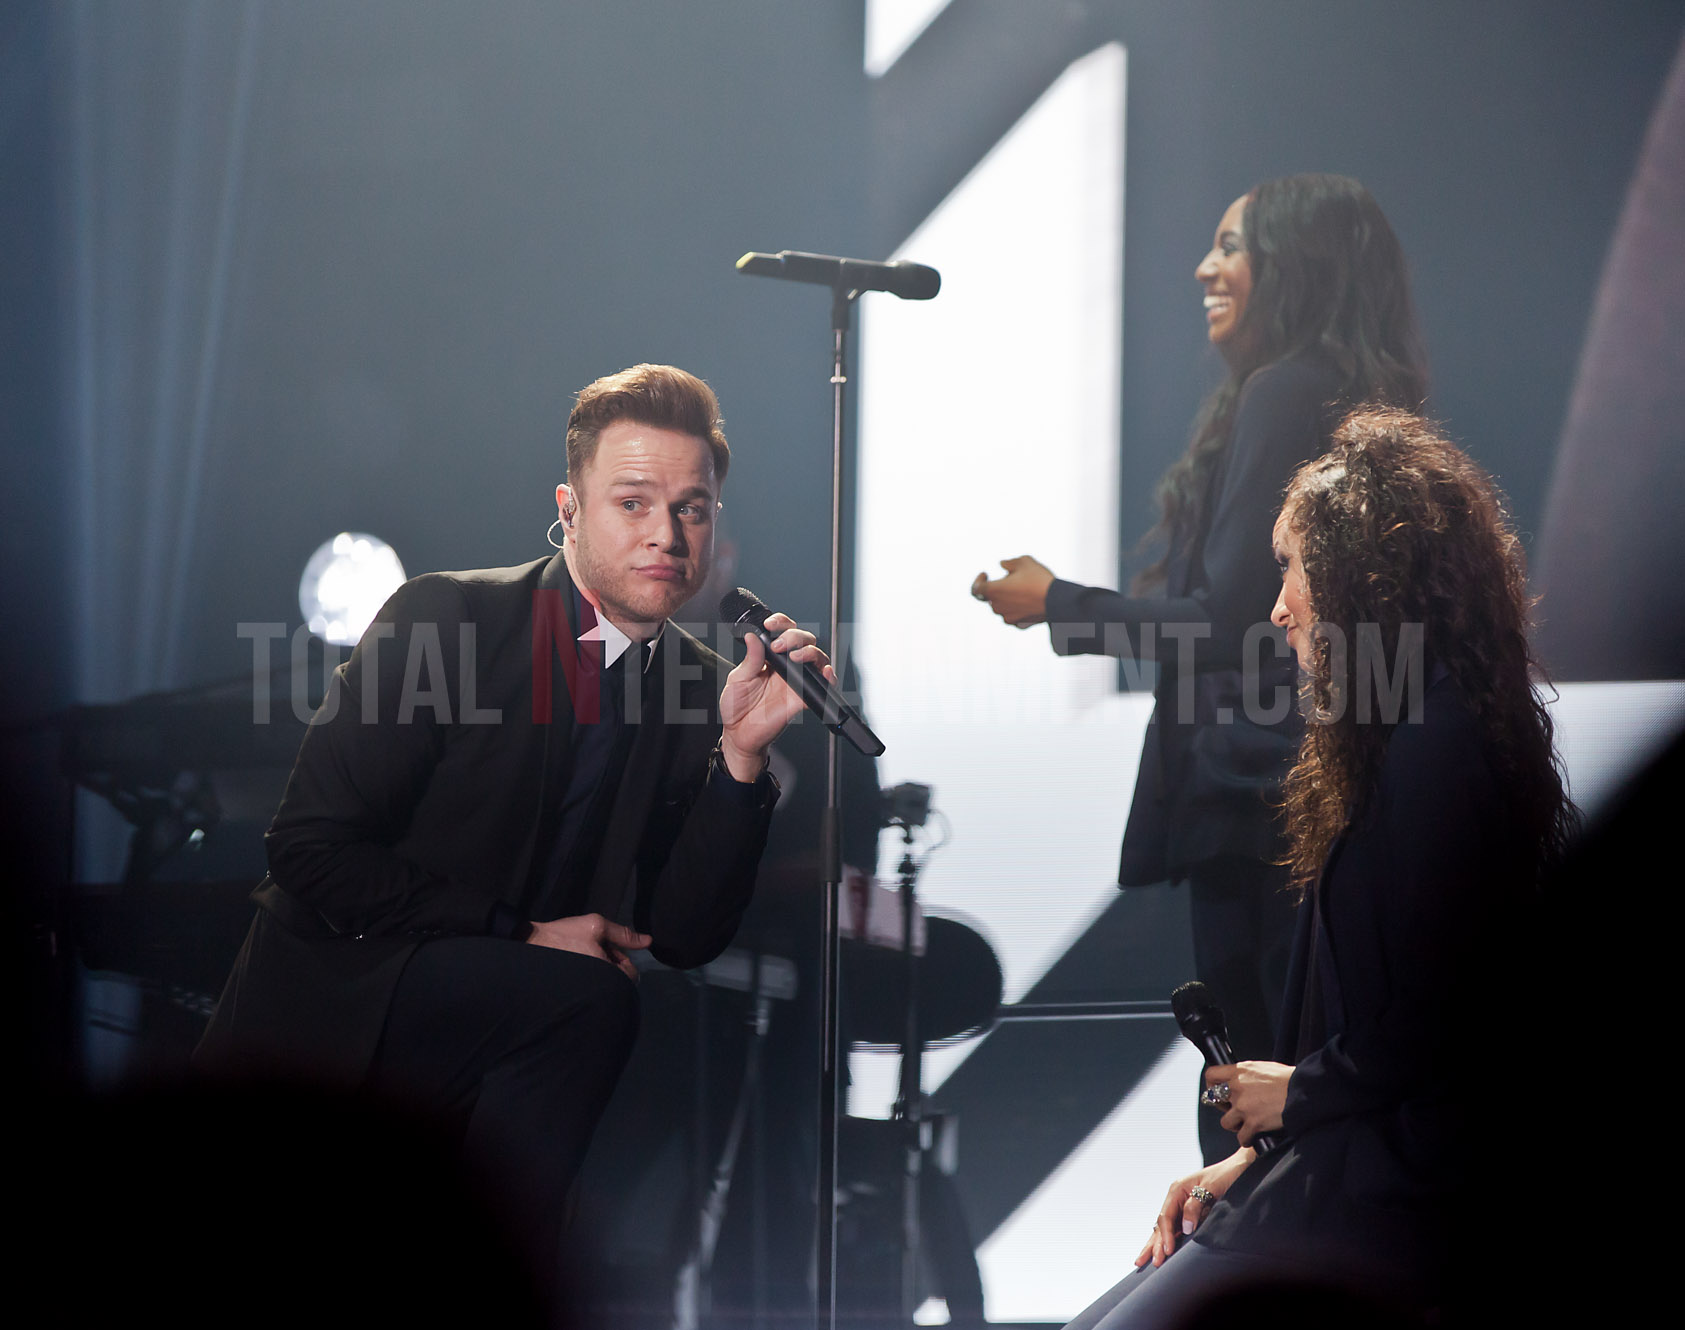 Olly Murs, Liverpool, Concert, Live Event